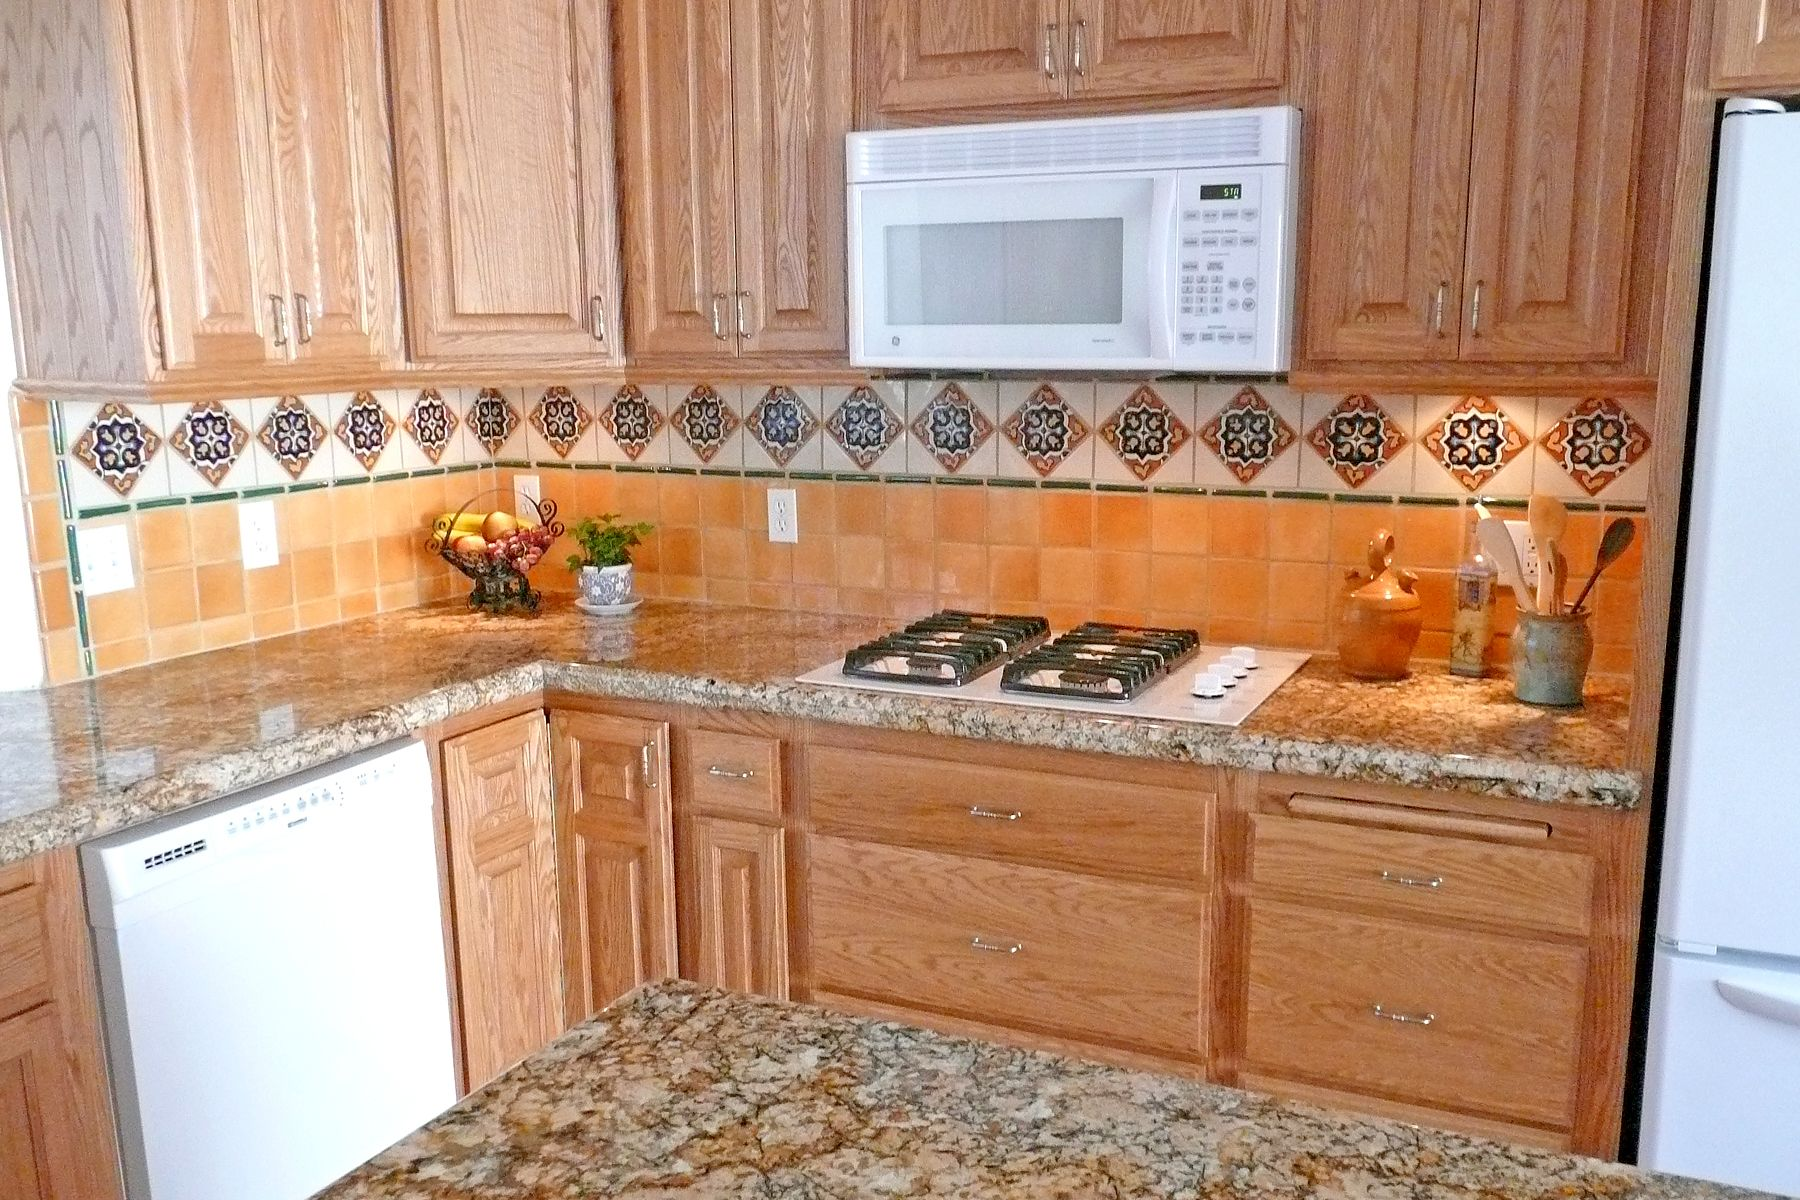 Kitchen With Mexican Tiles Backsplash.